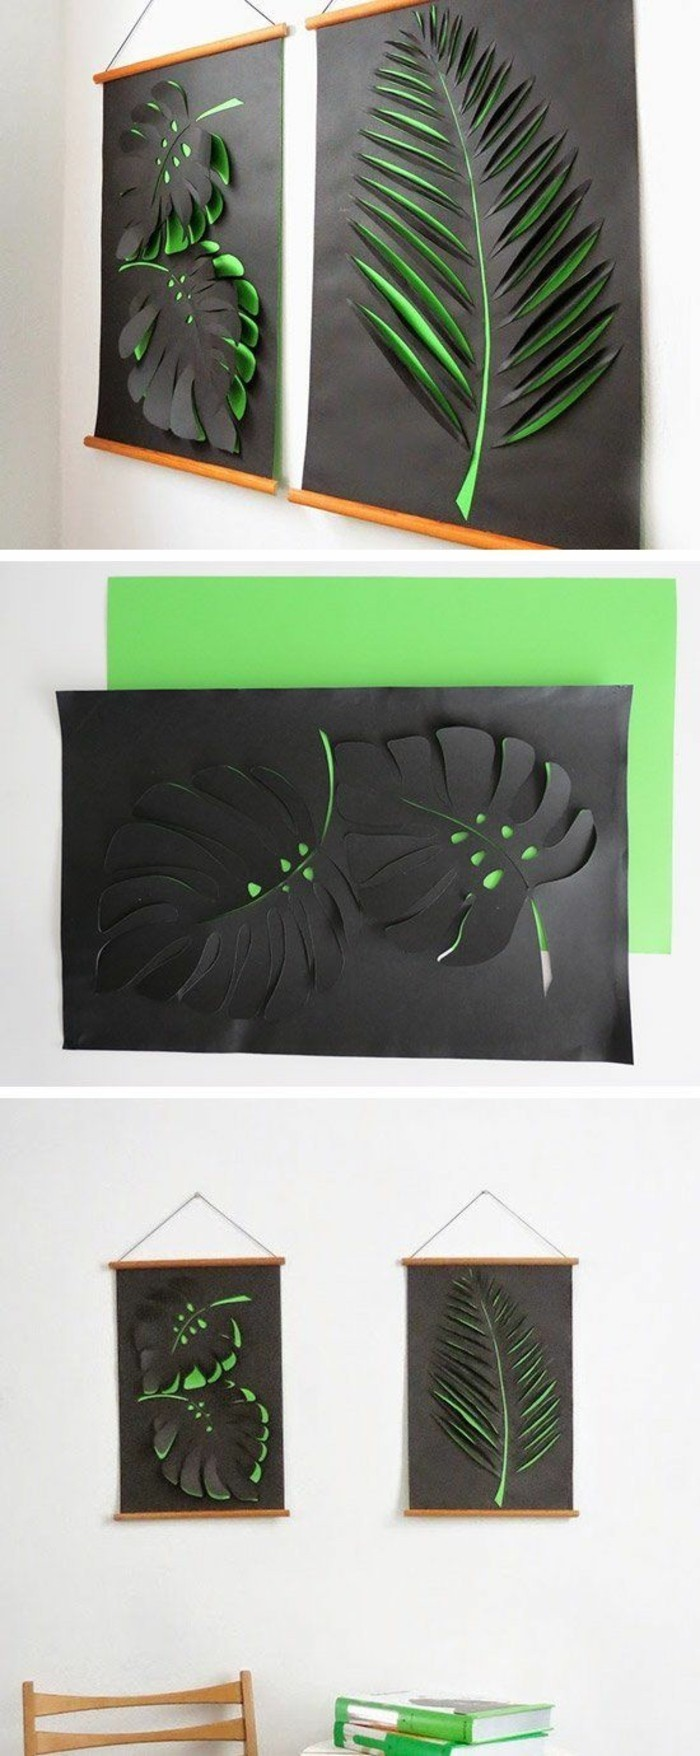 diy art projects, green an black paper, palm leaves, step by step, diy tutorial, hanging on a white wall